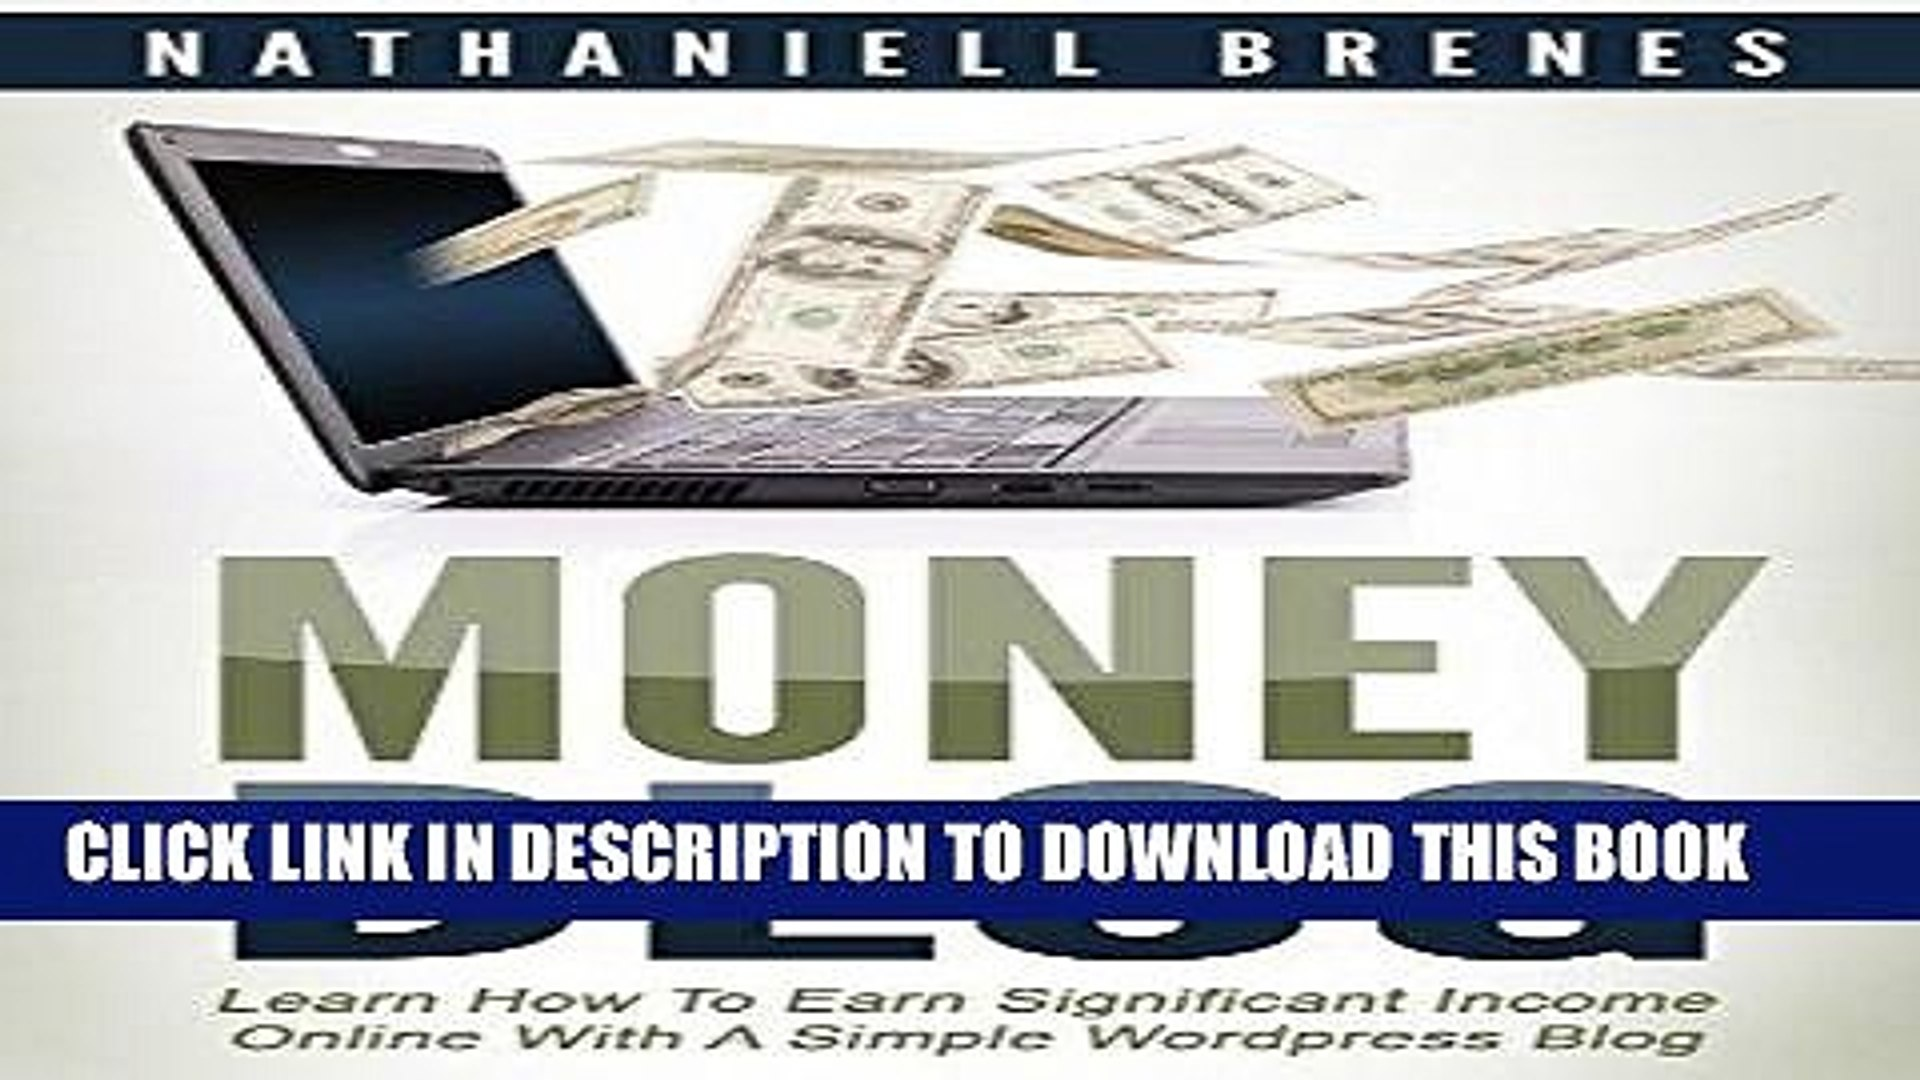 [New] Ebook Money Blog: Learn How To Earn Significant Income Online With a Simple WordPress Blog